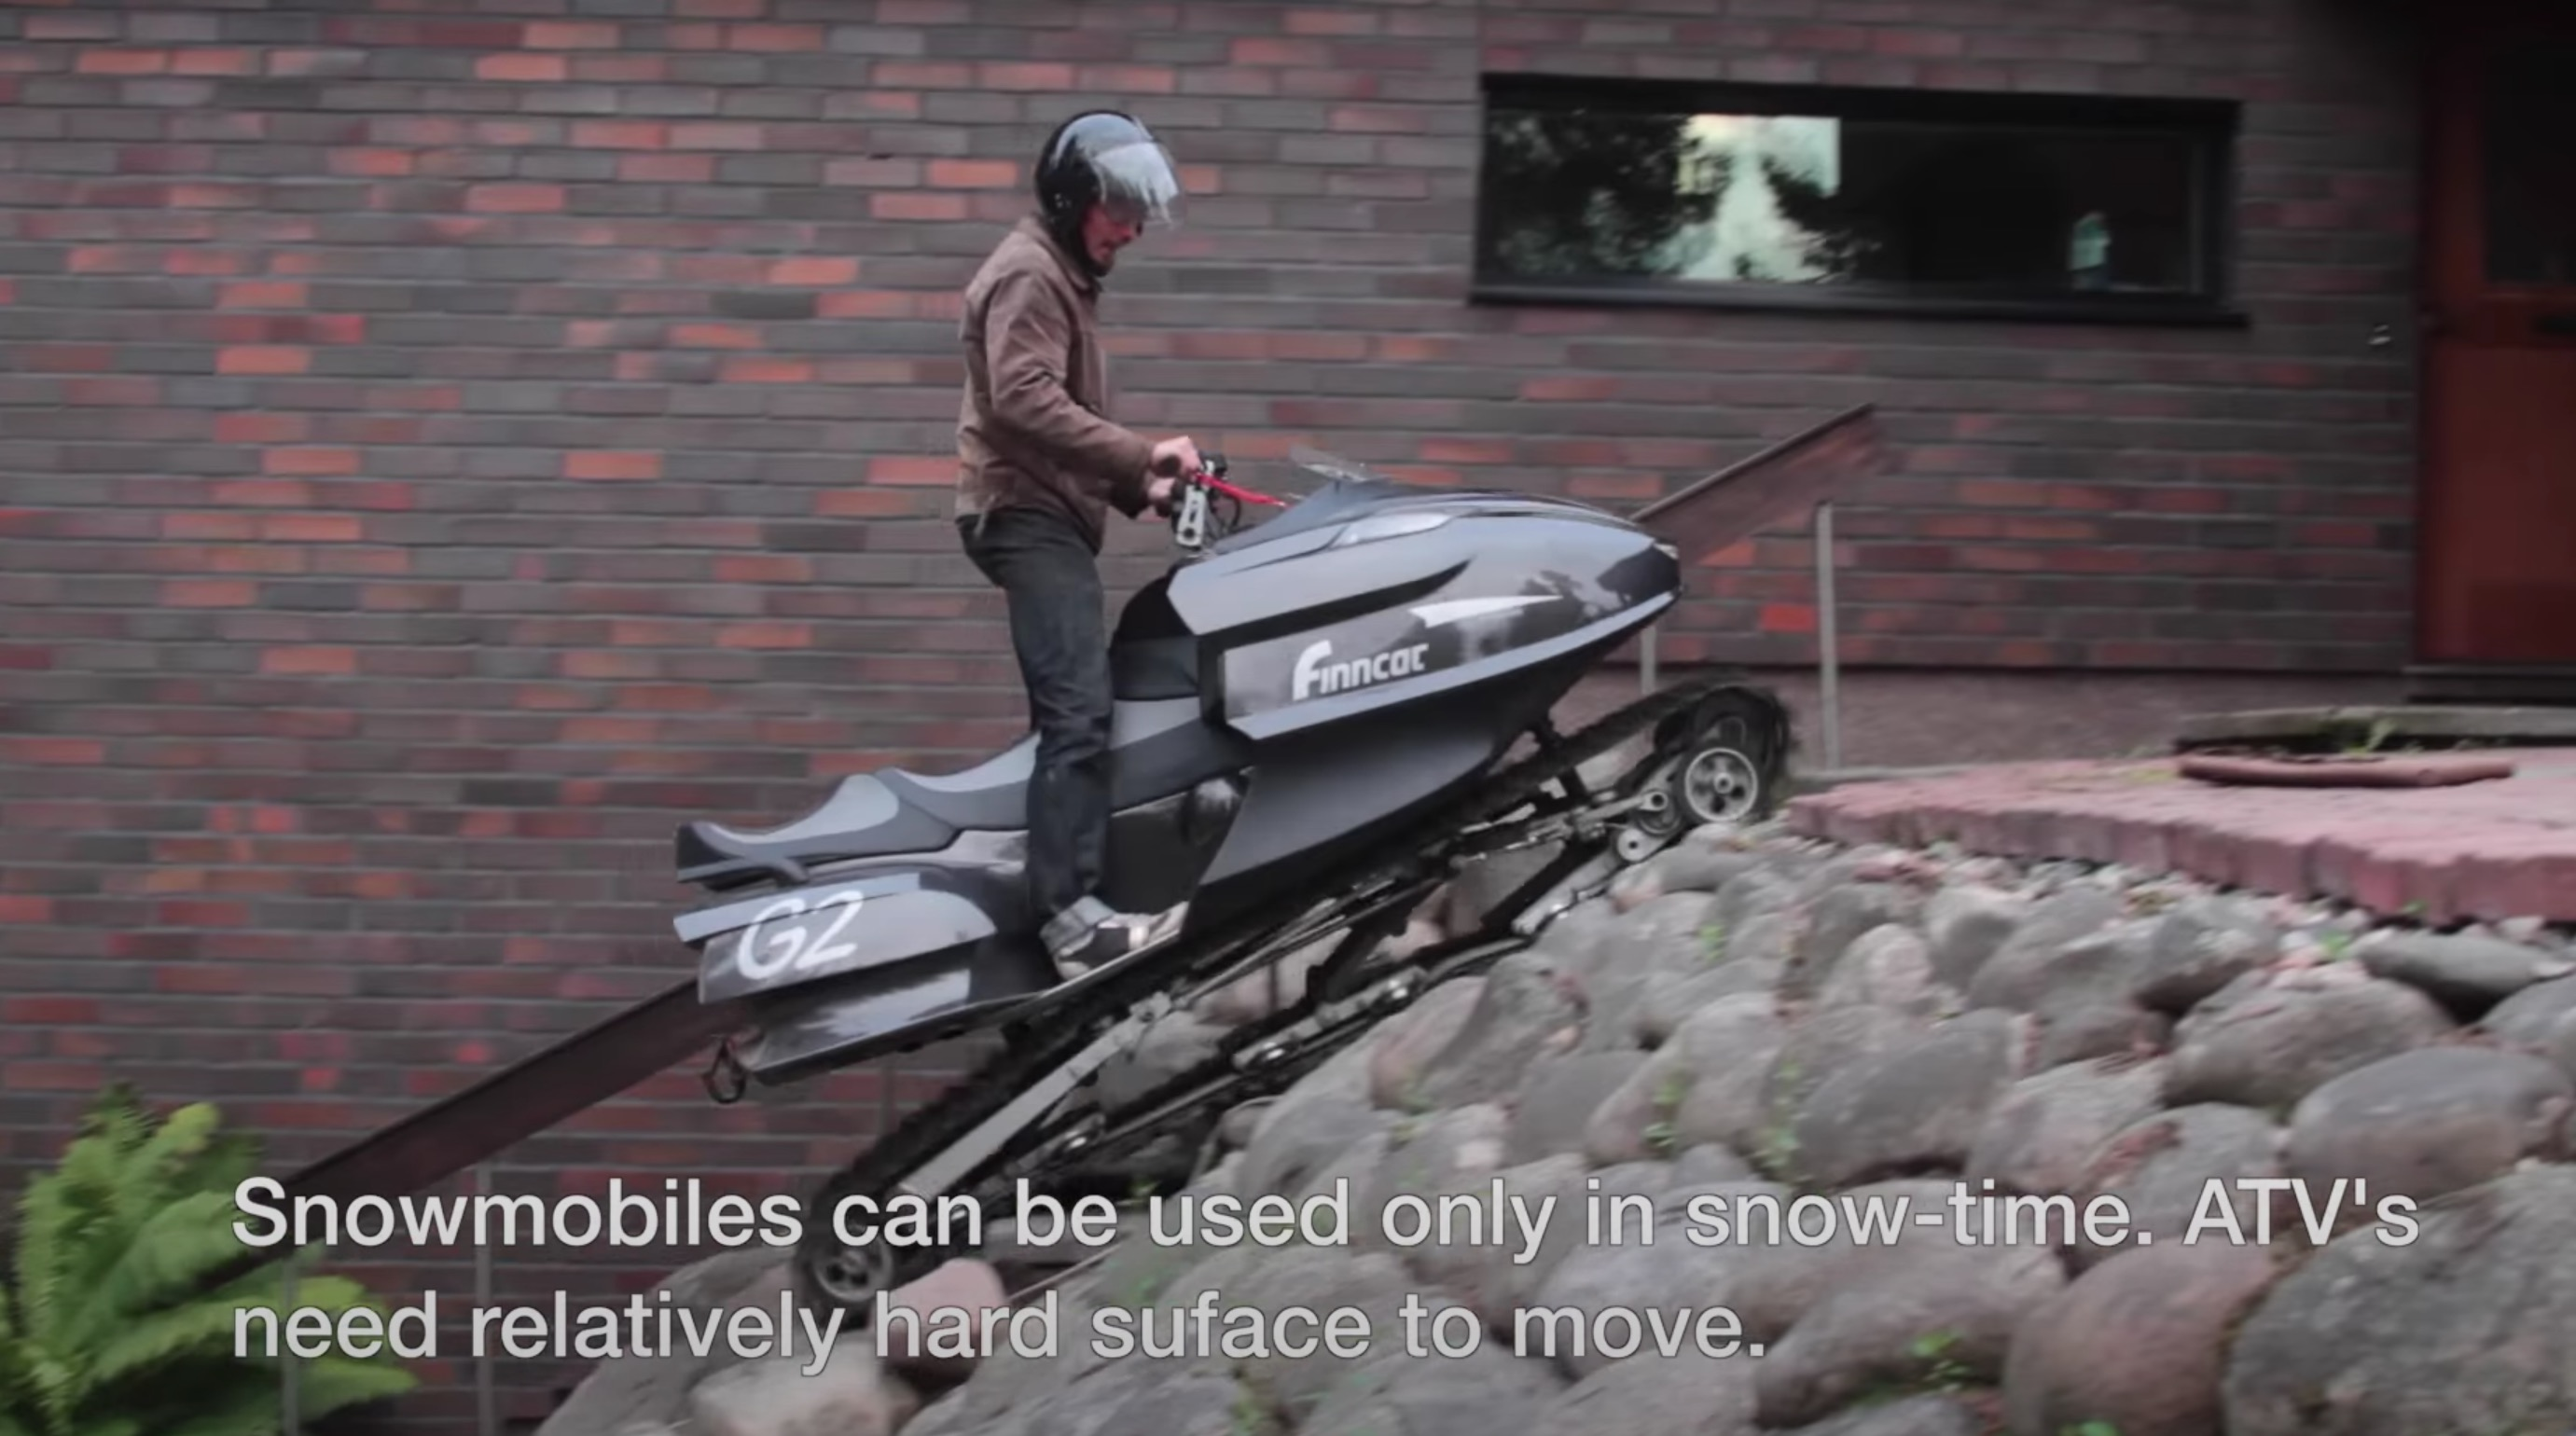 Check Out These Strange Snowmobiles From Finland